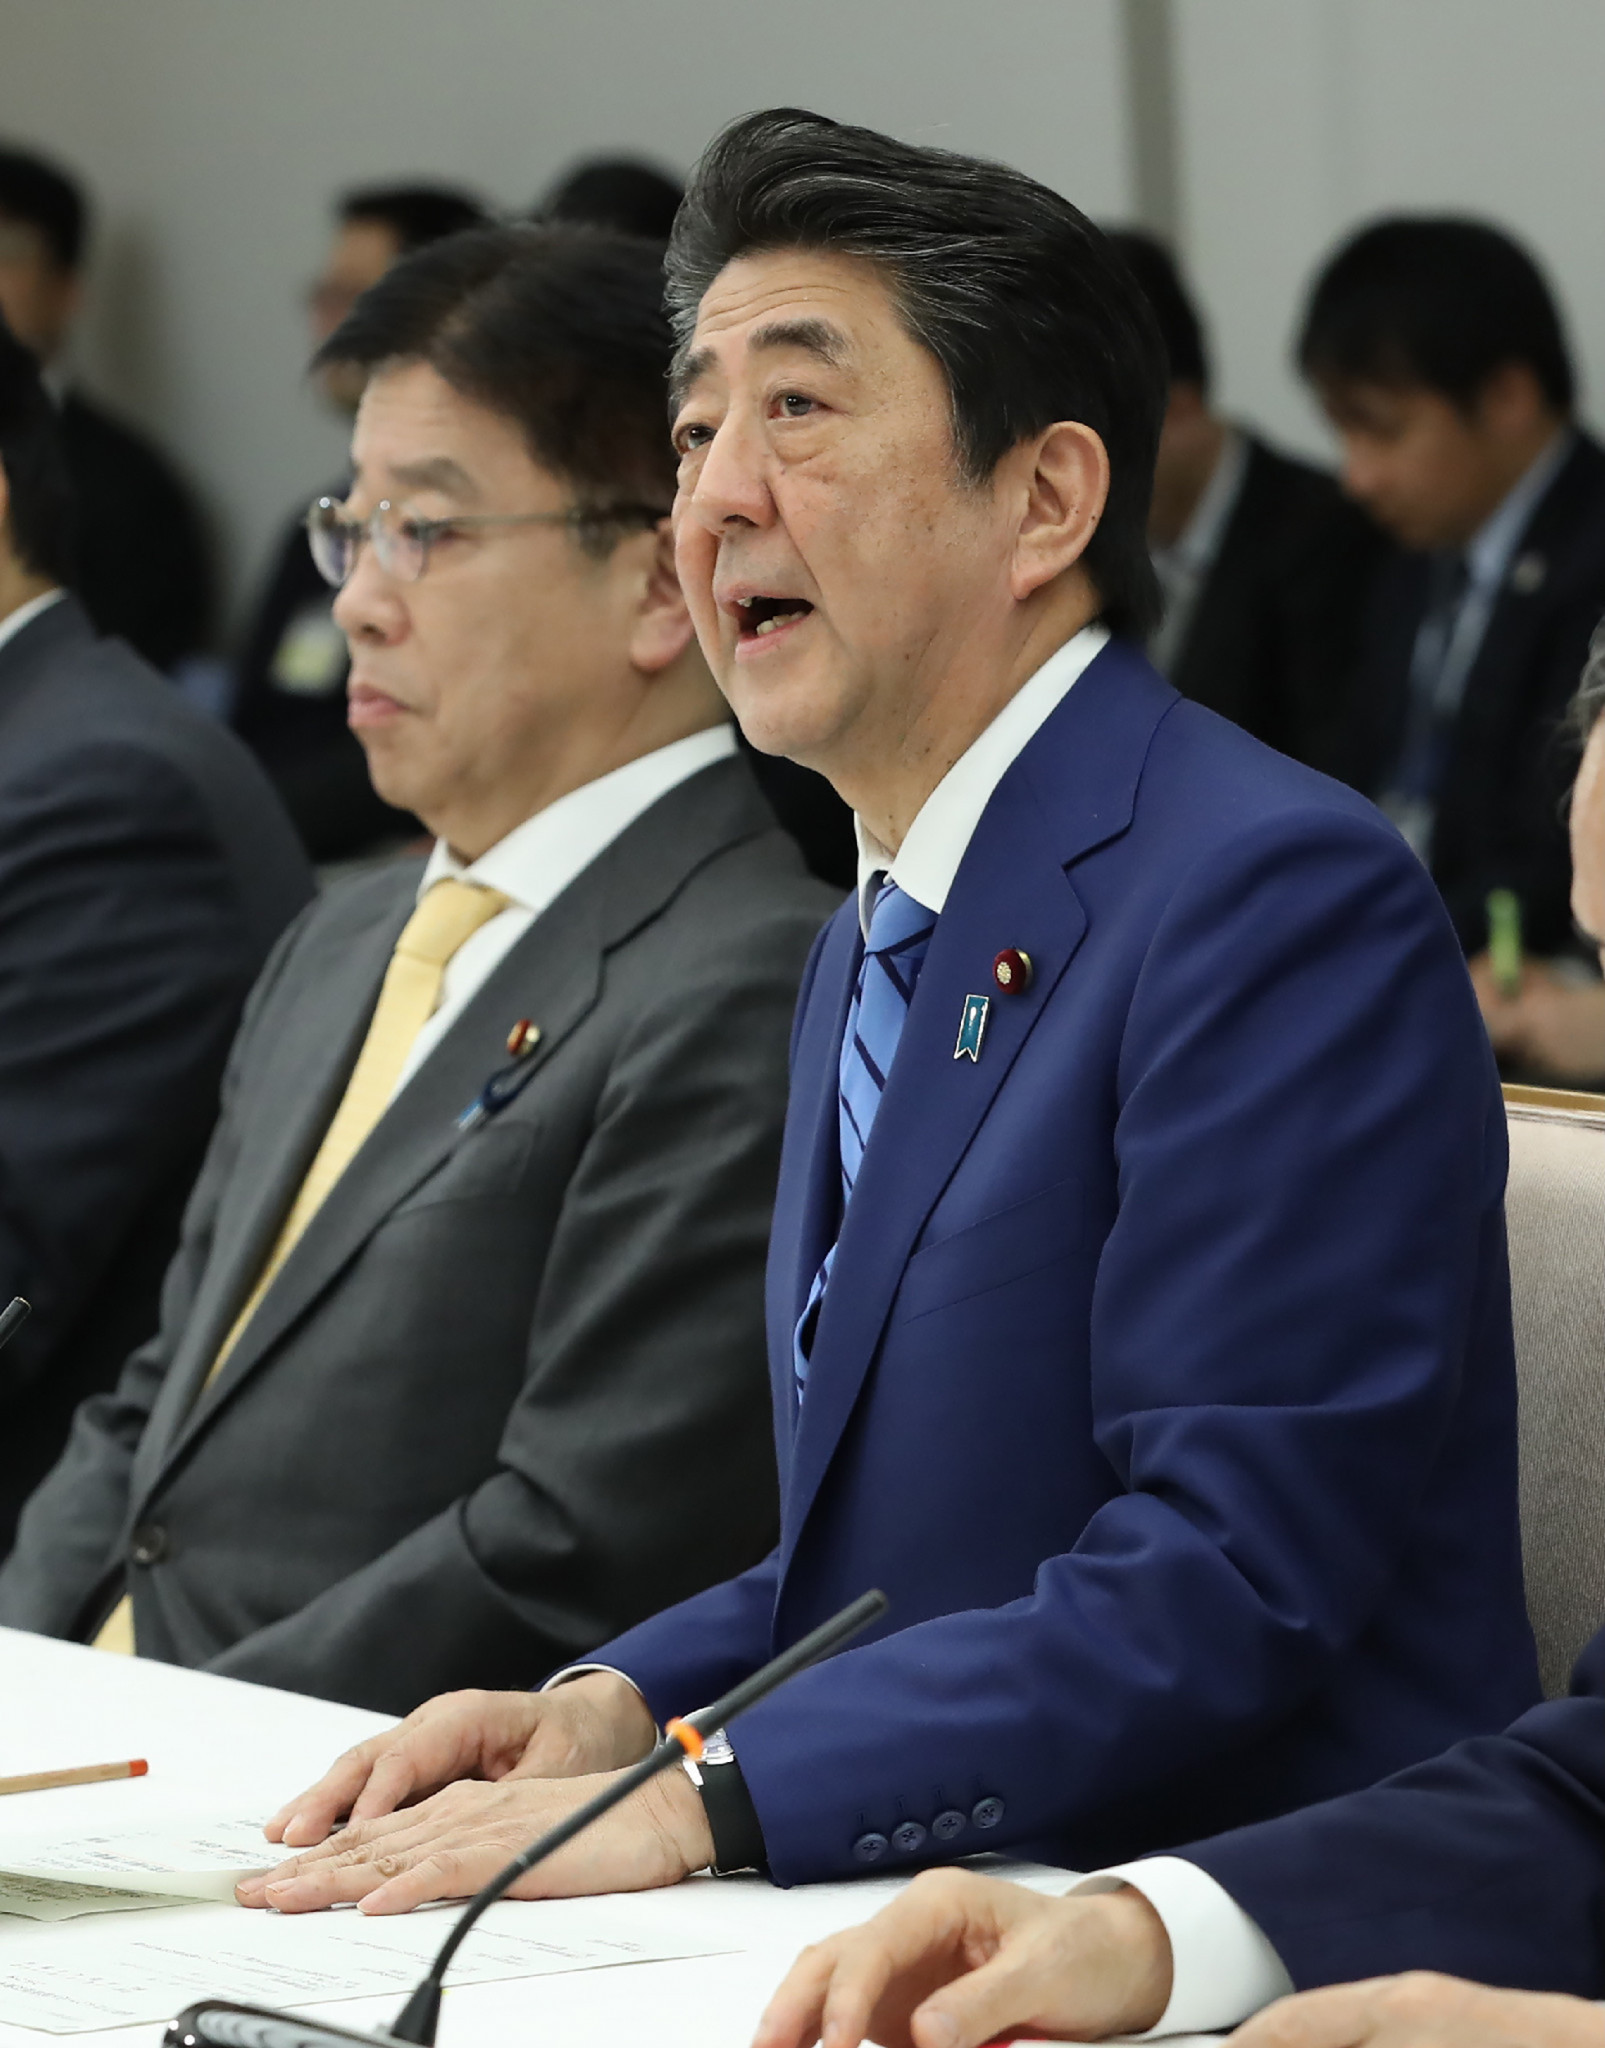 Japan's Prime Minister Shinzō Abe said the first weeks of March would be an